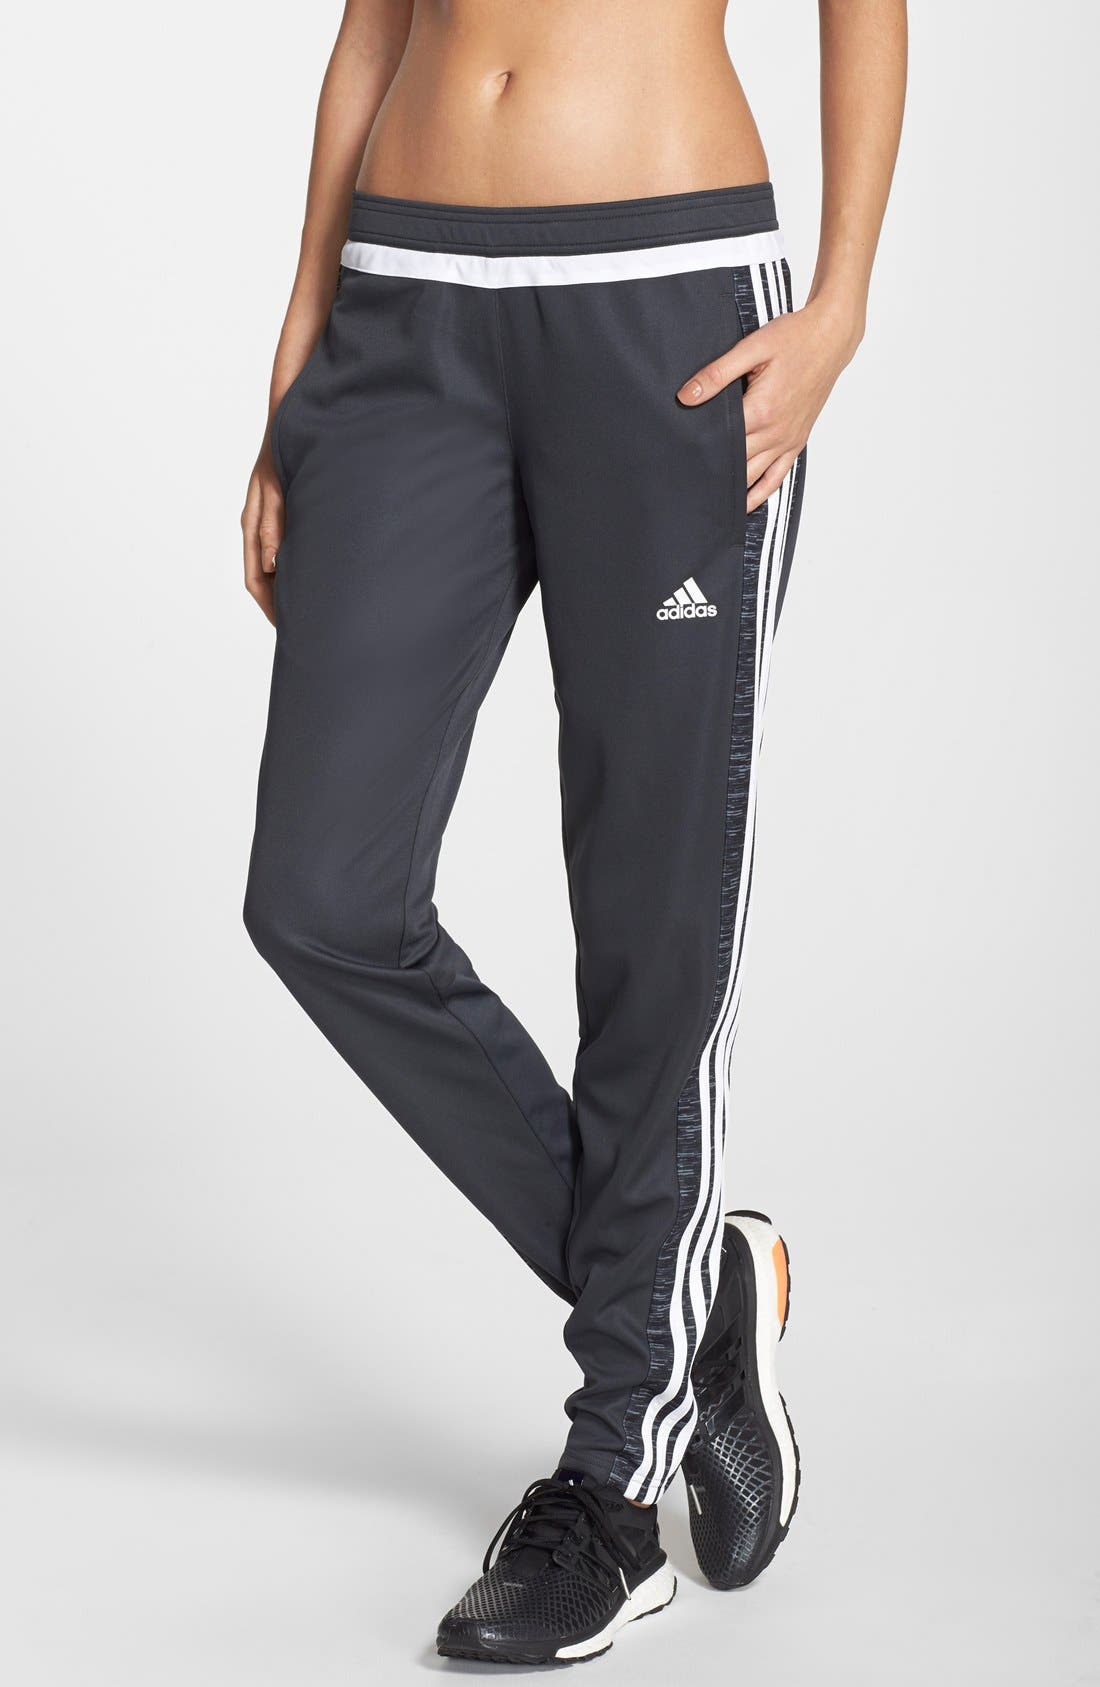 Alternate Image 1 Selected - adidas 'Tiro 15' Training Pants